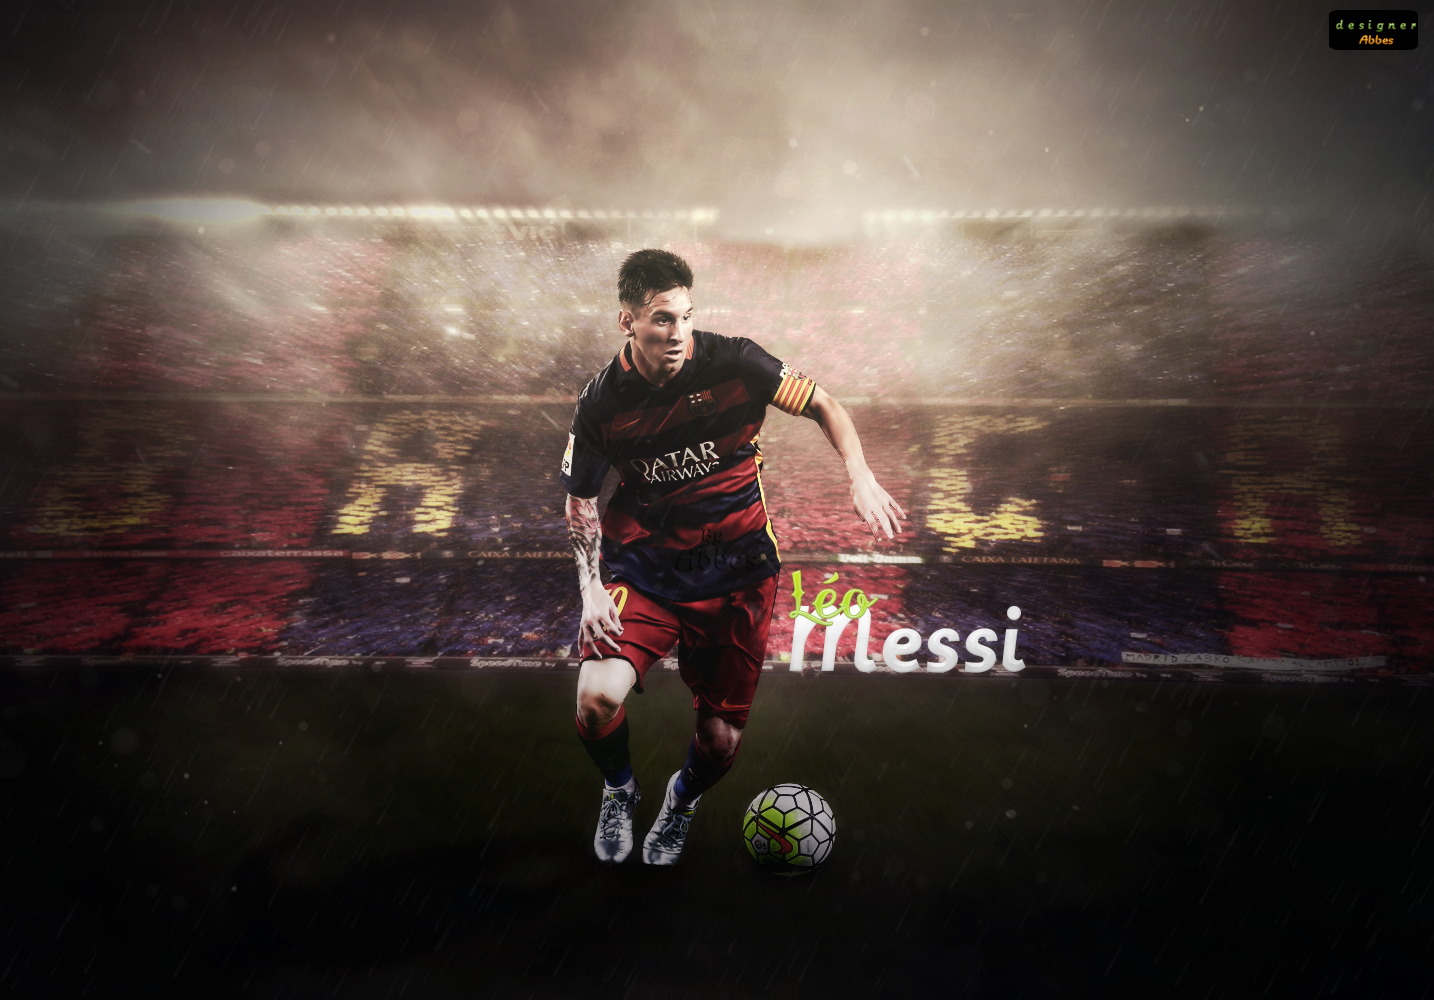 leo messi 2016 by abbes17 watch fan art wallpaper other 2015 2016 ...